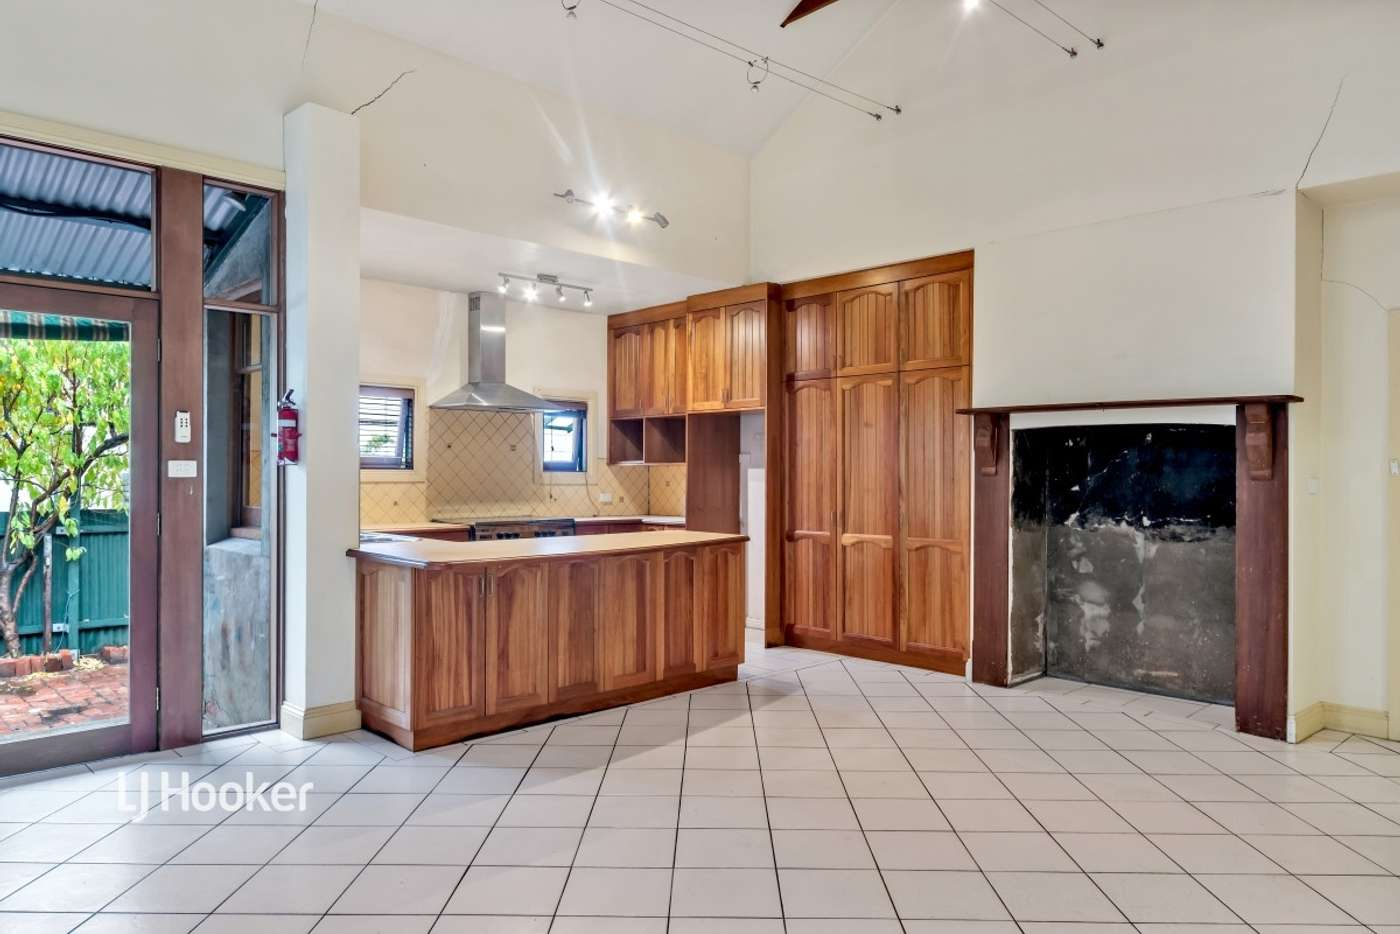 Fifth view of Homely house listing, 13 Edward Street, Evandale SA 5069